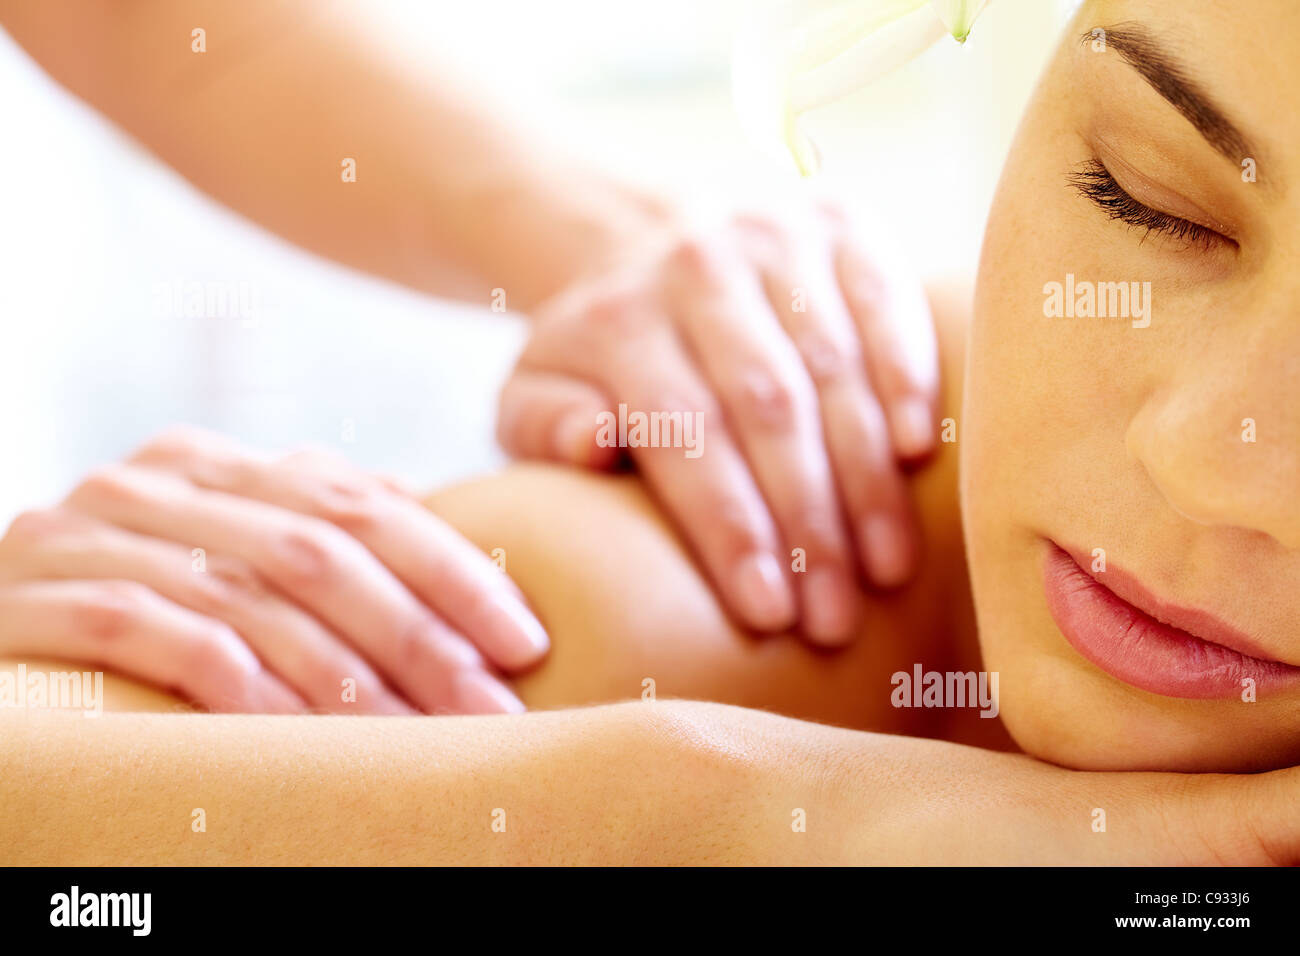 Close-up of calm female during luxurious procedure of massage - Stock Image